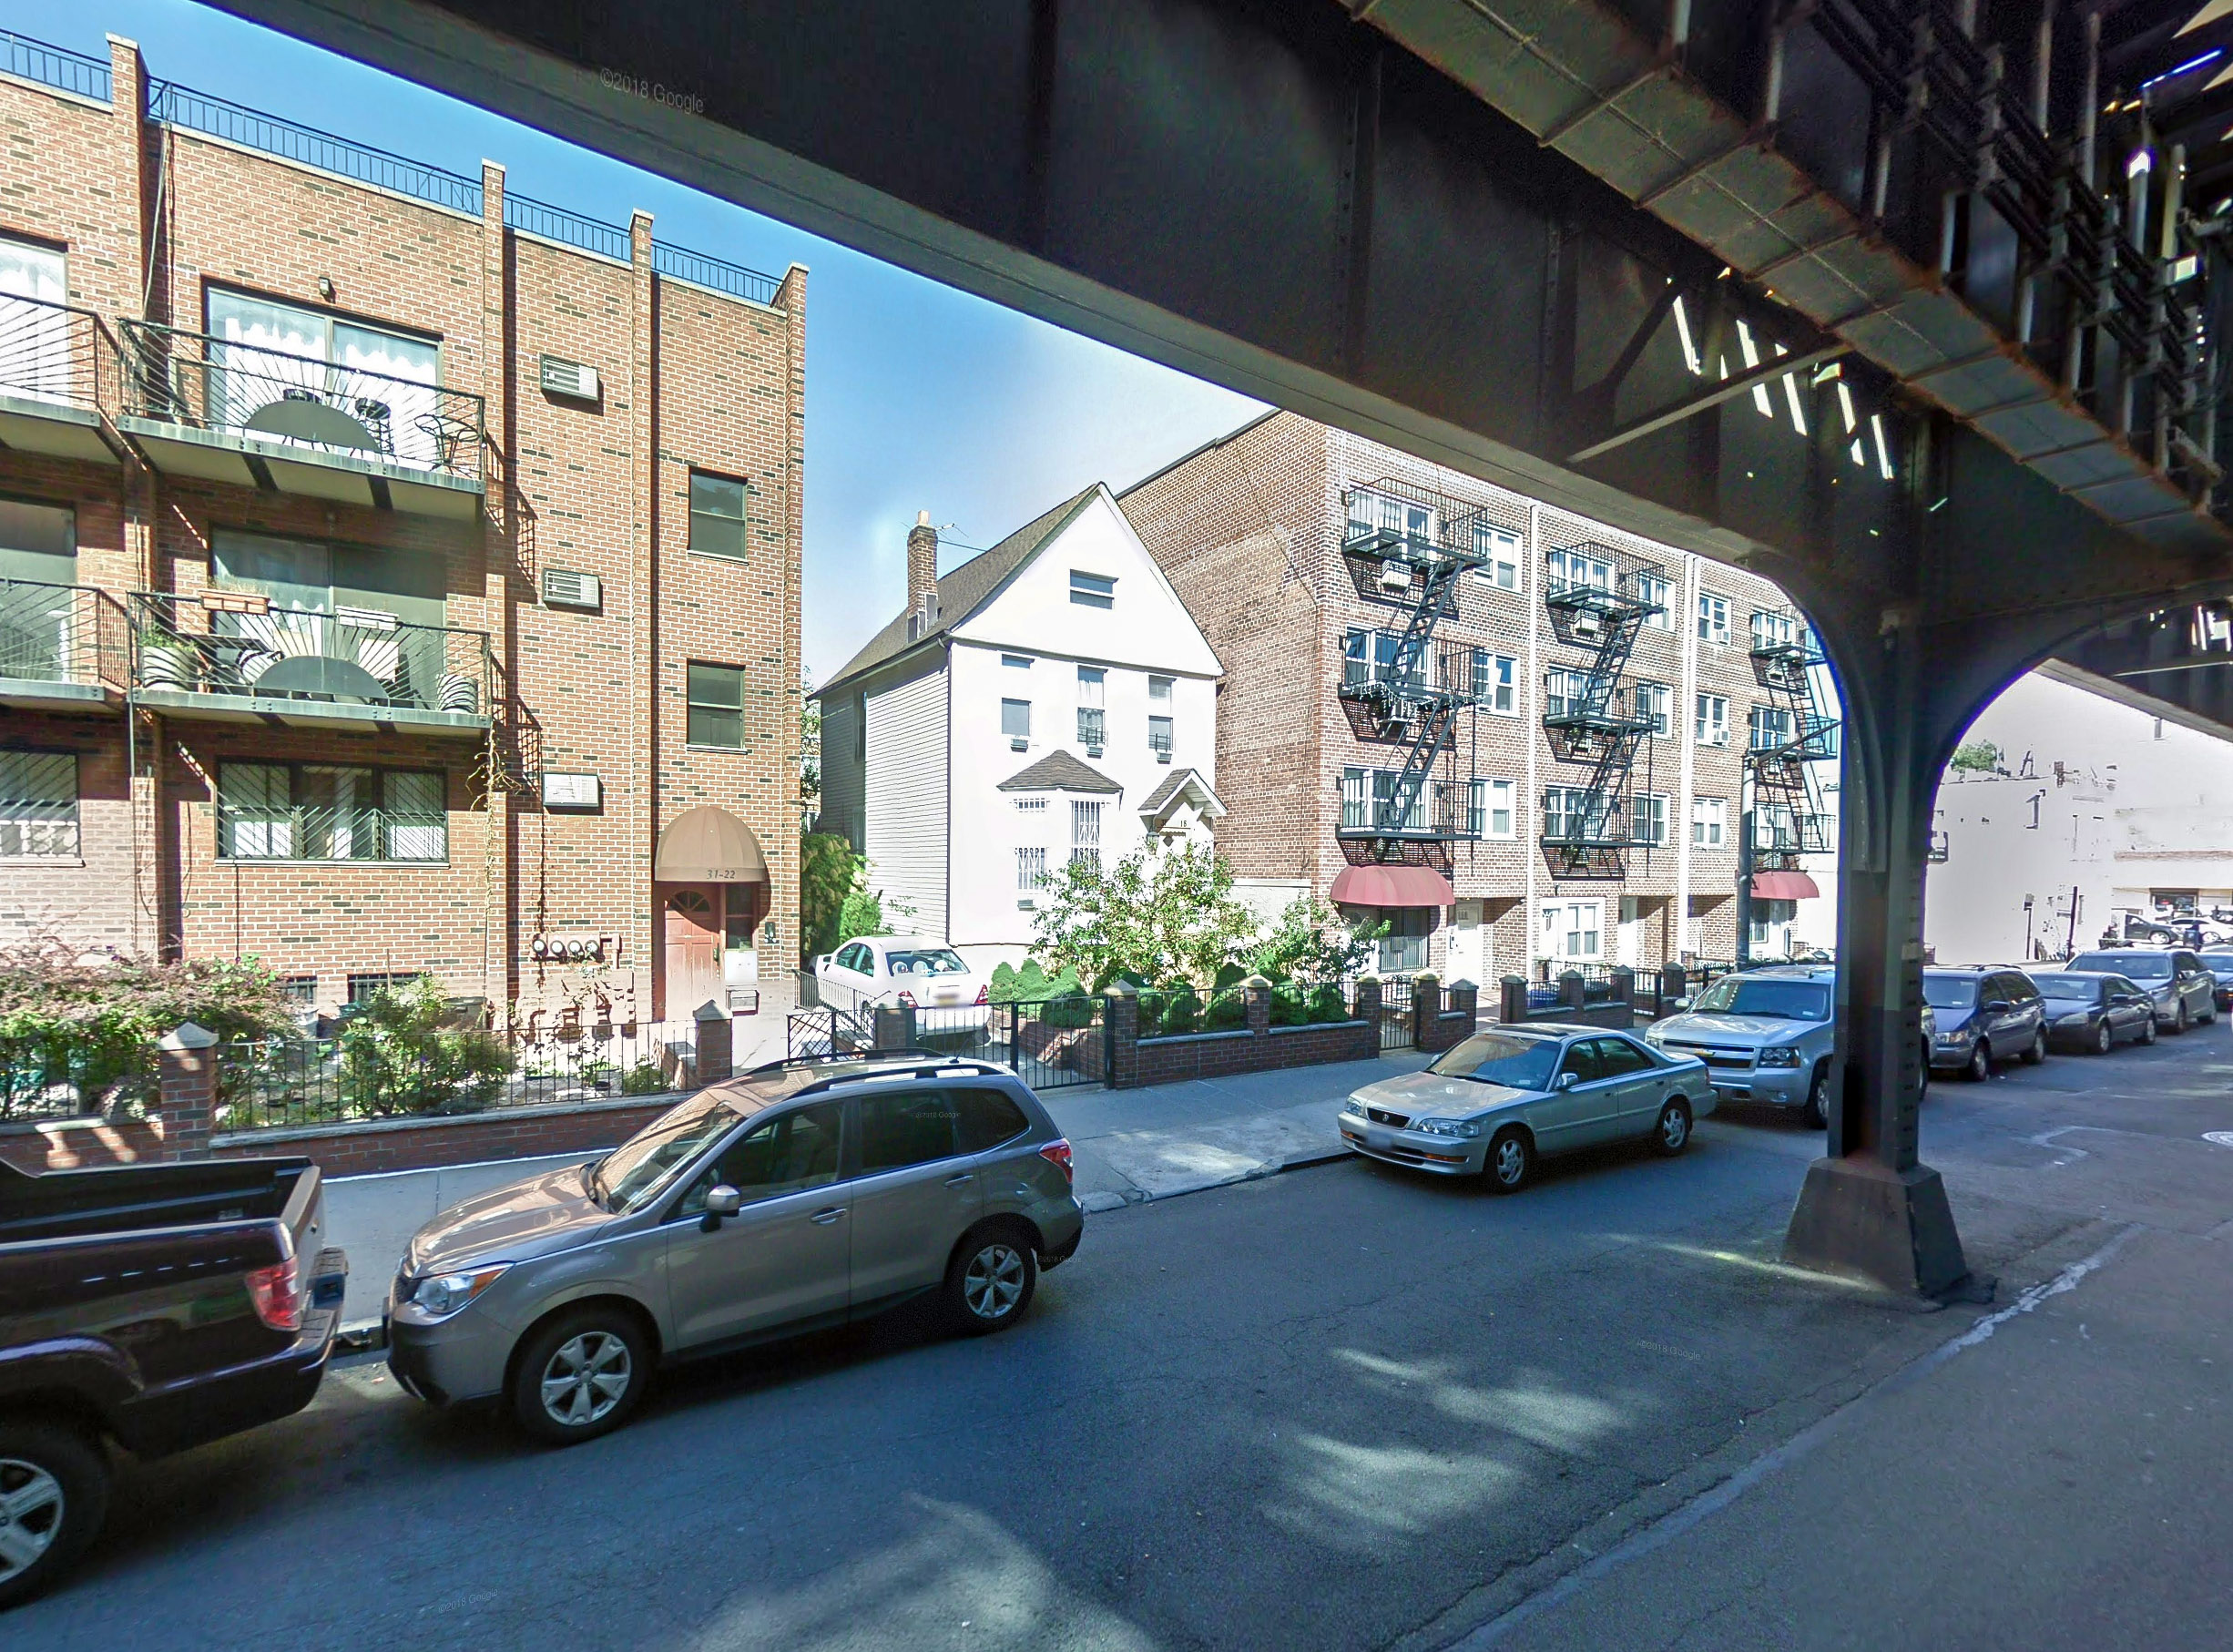 31-18 31st Street, via Google Maps